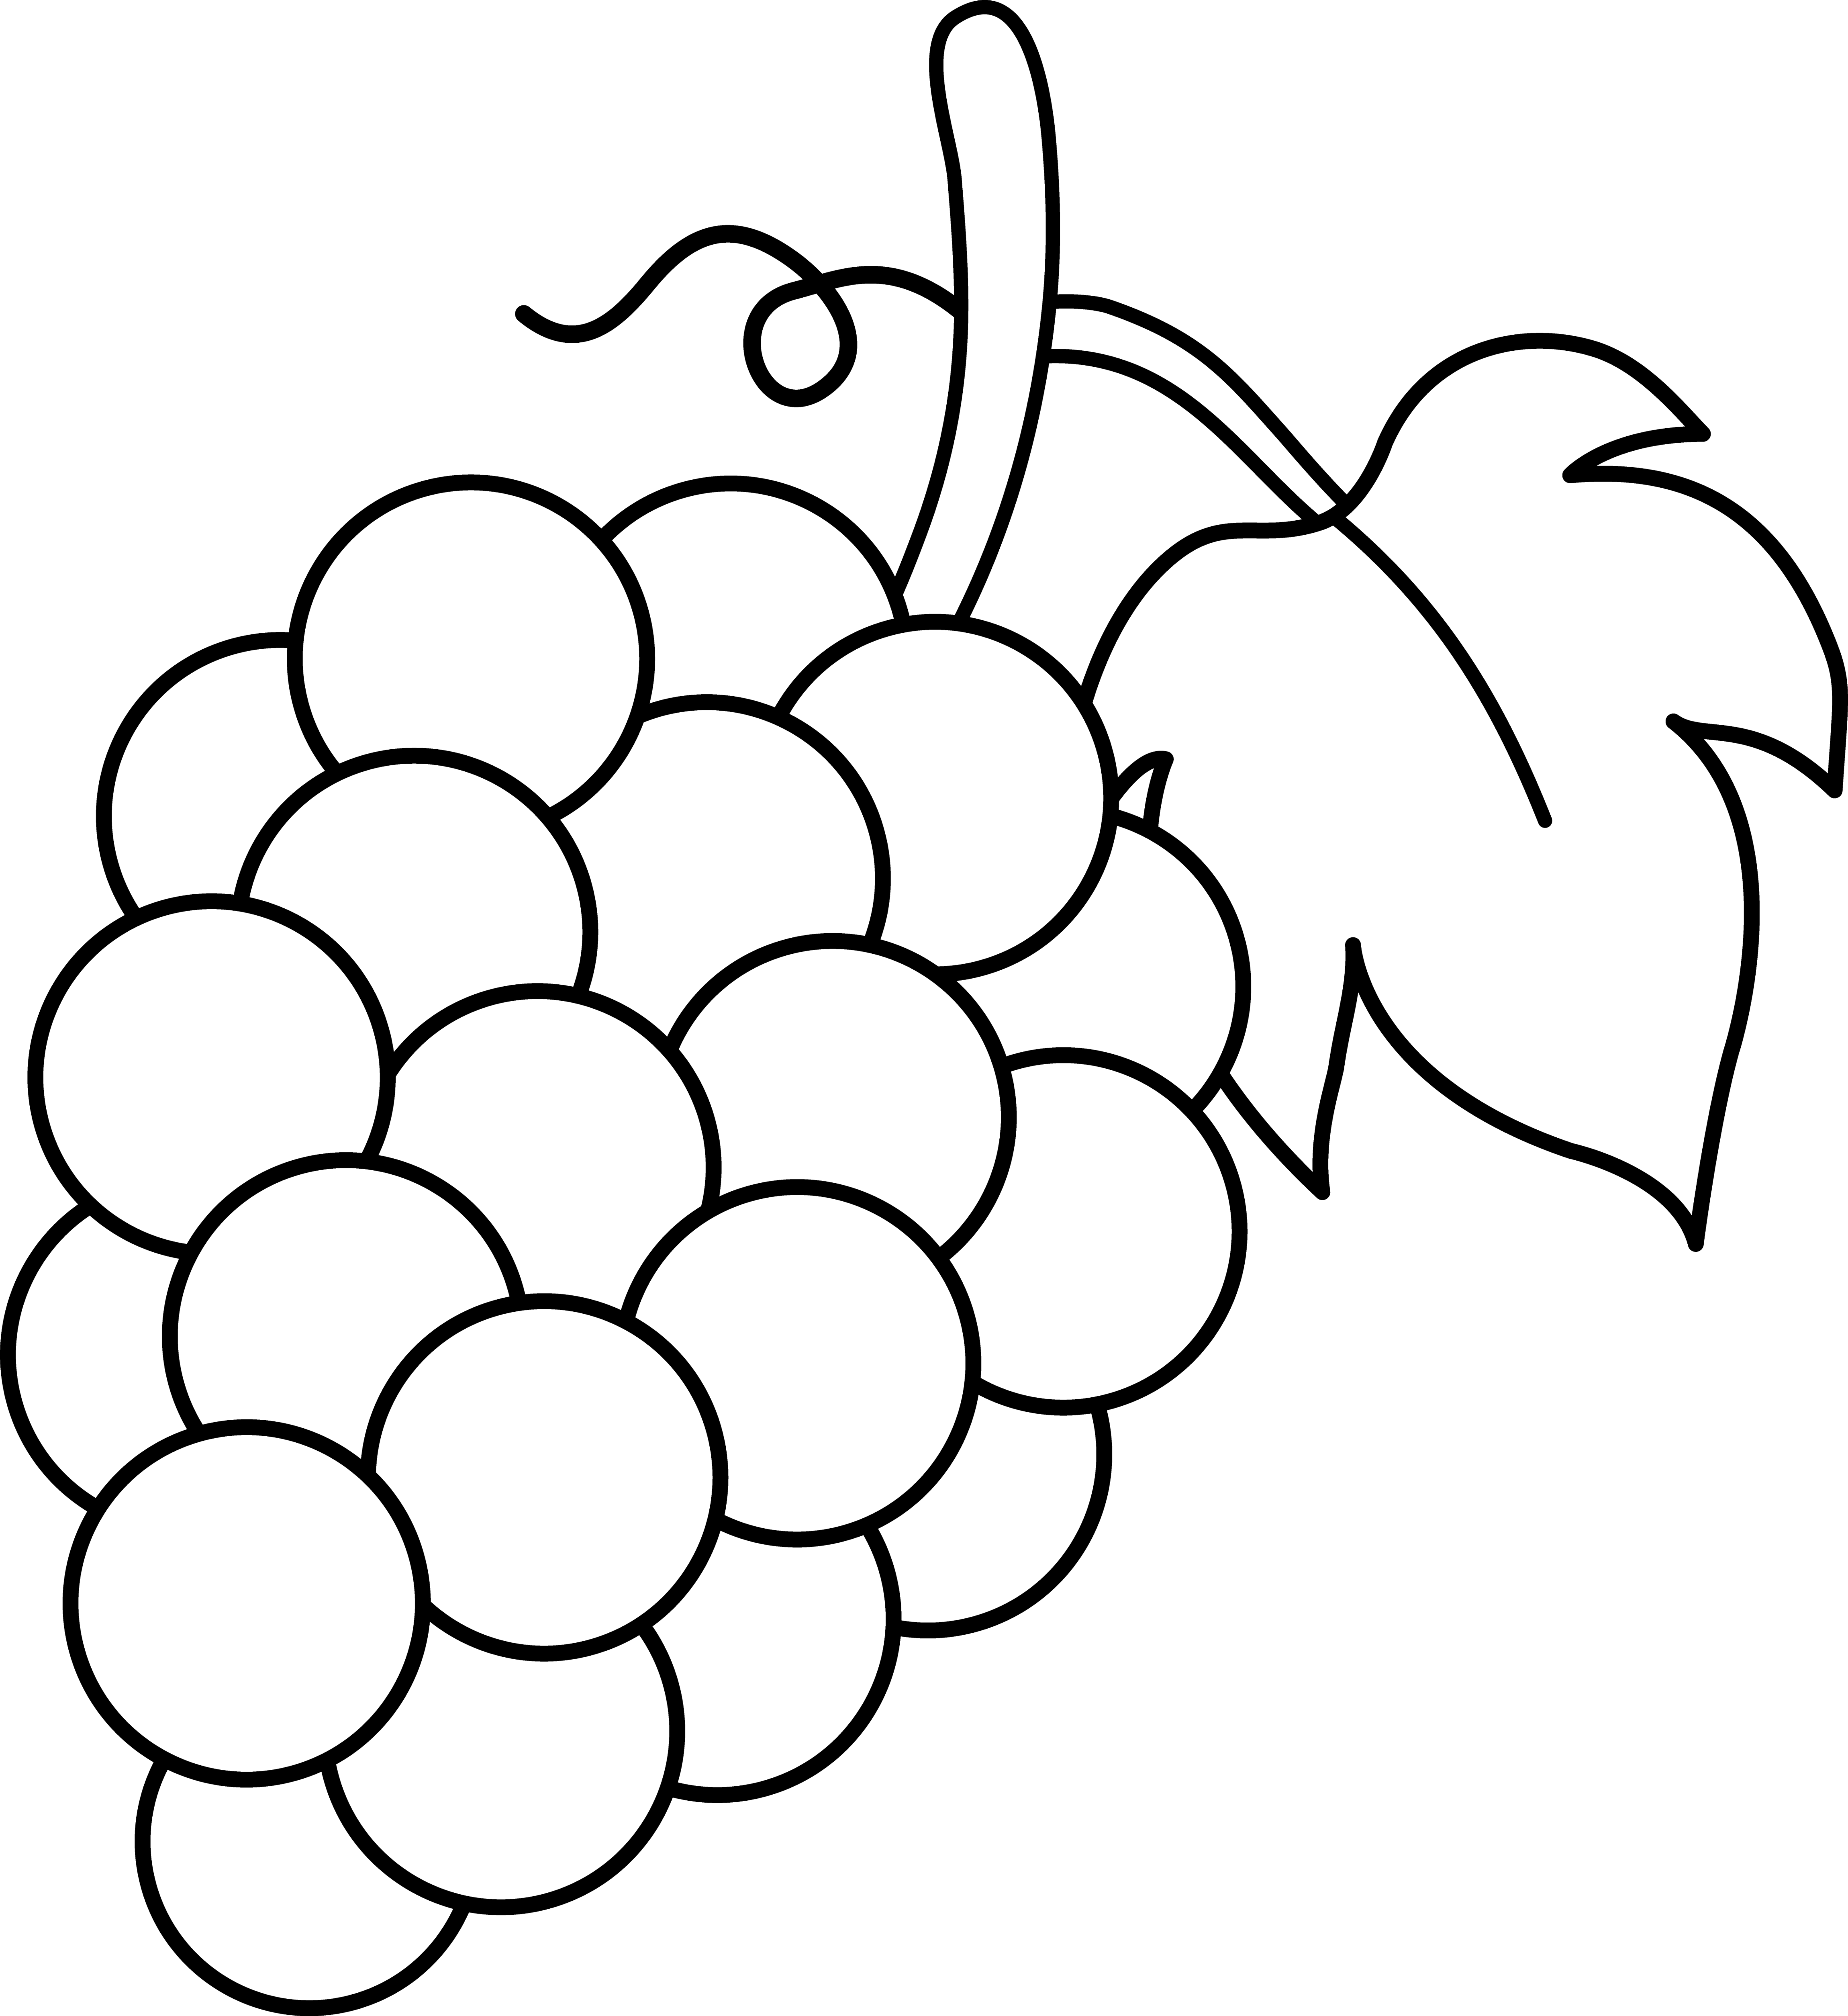 2103 Grapes free clipart.